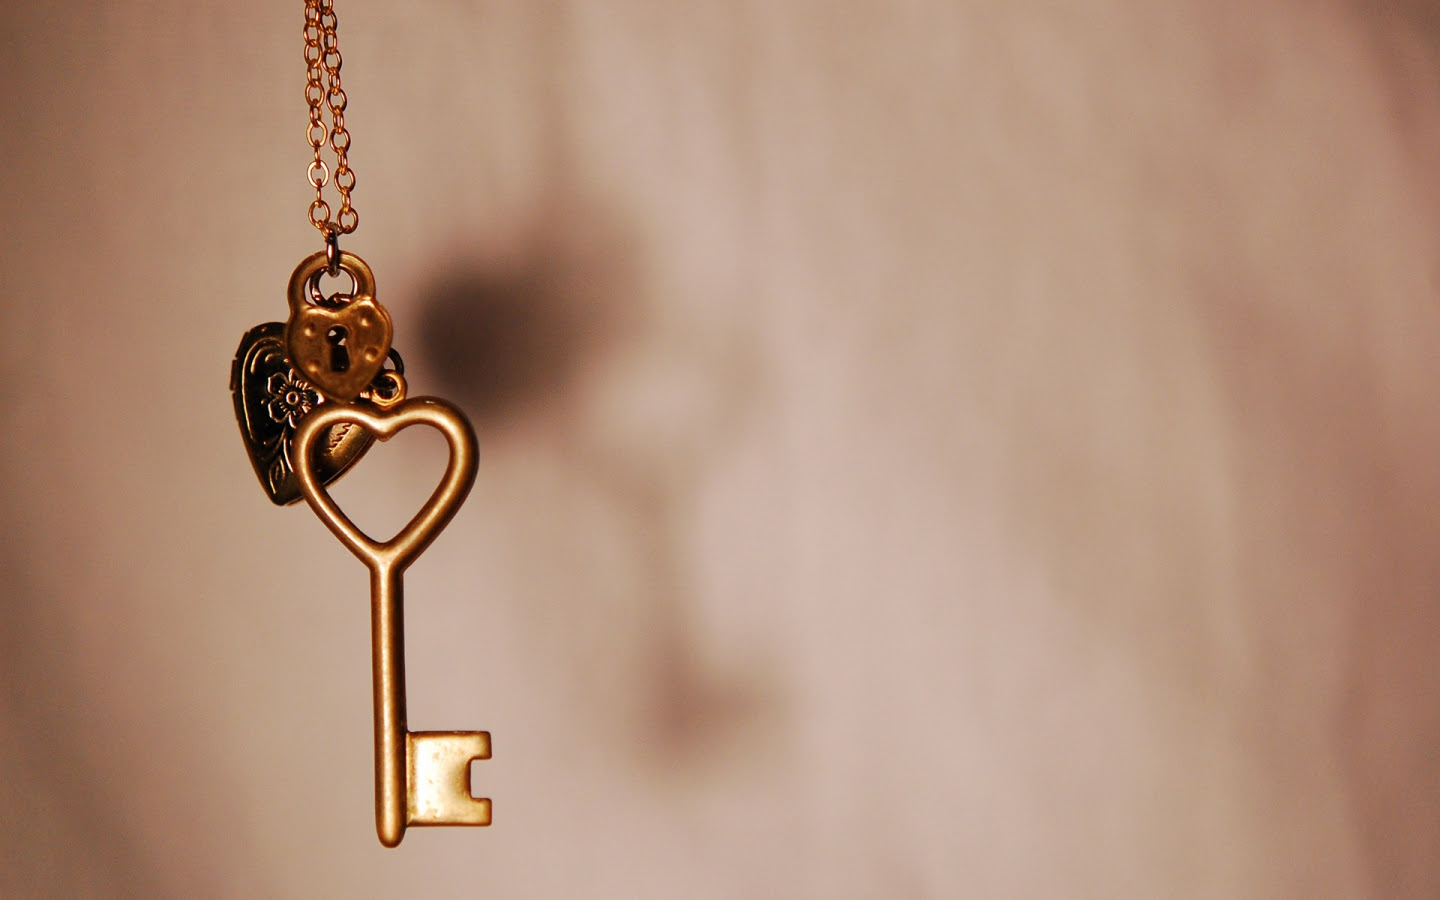 Key To My Heart Necklace Lock Key Charms On Sterling Silver Lock And